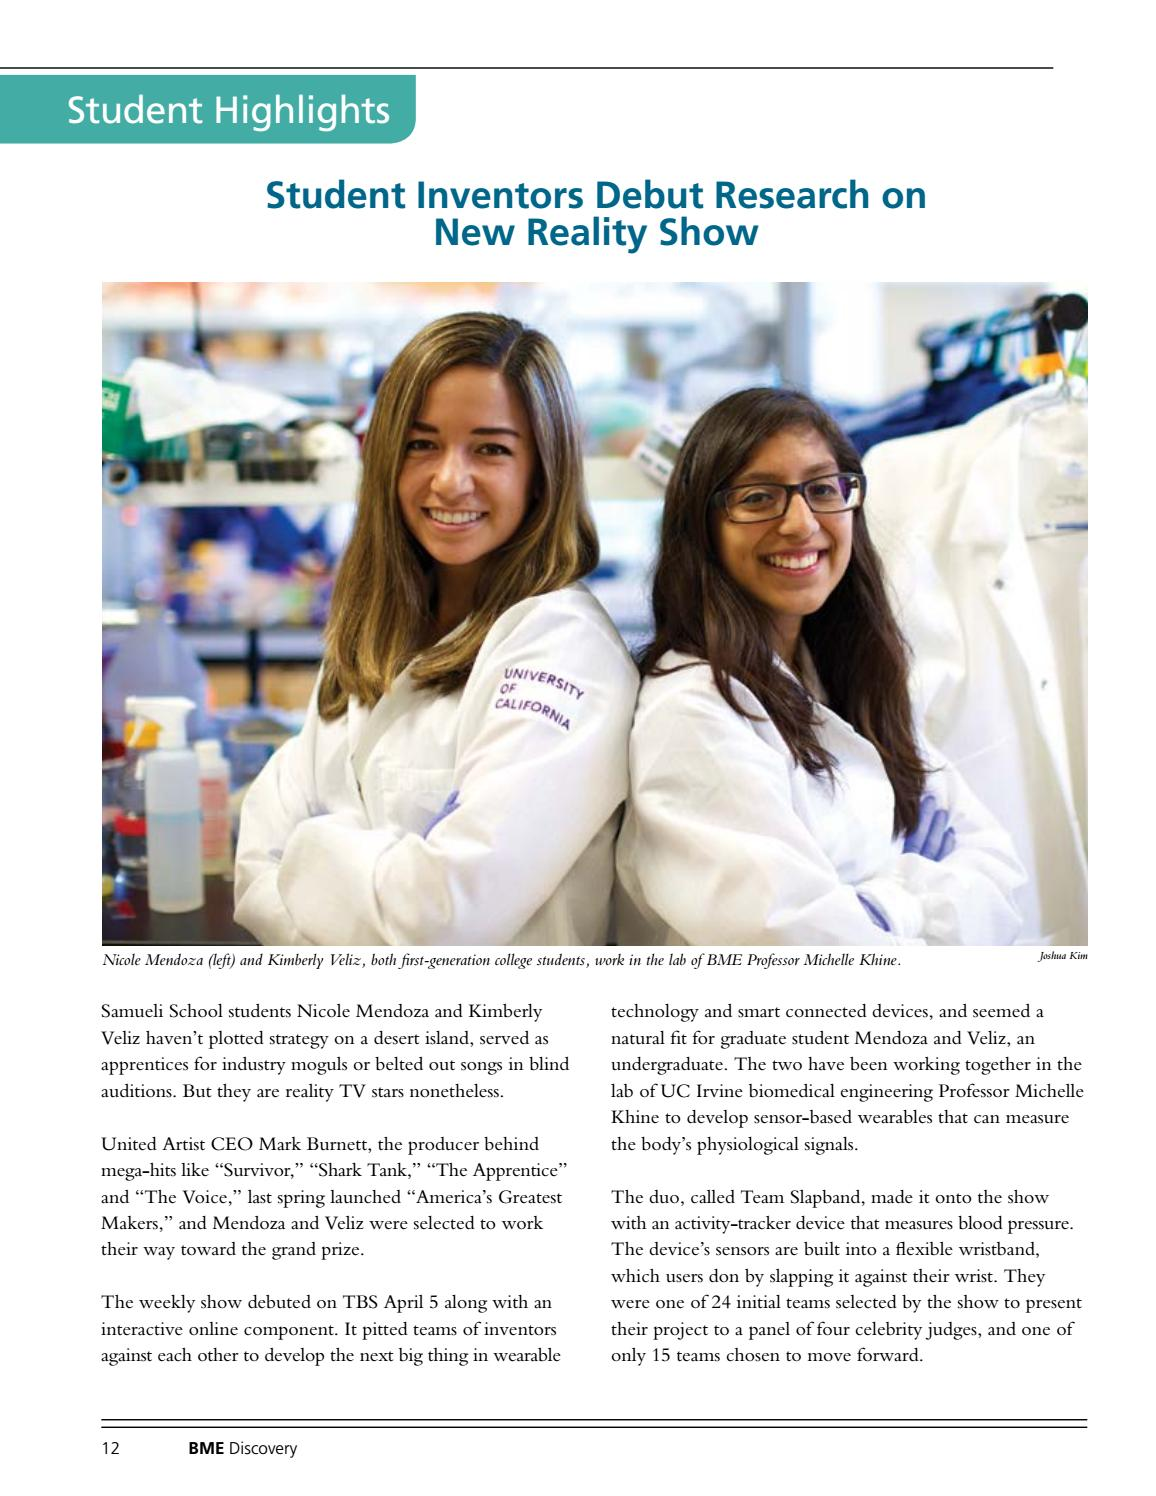 Discovery: UC Irvine Biomedical Engineering Department by UC